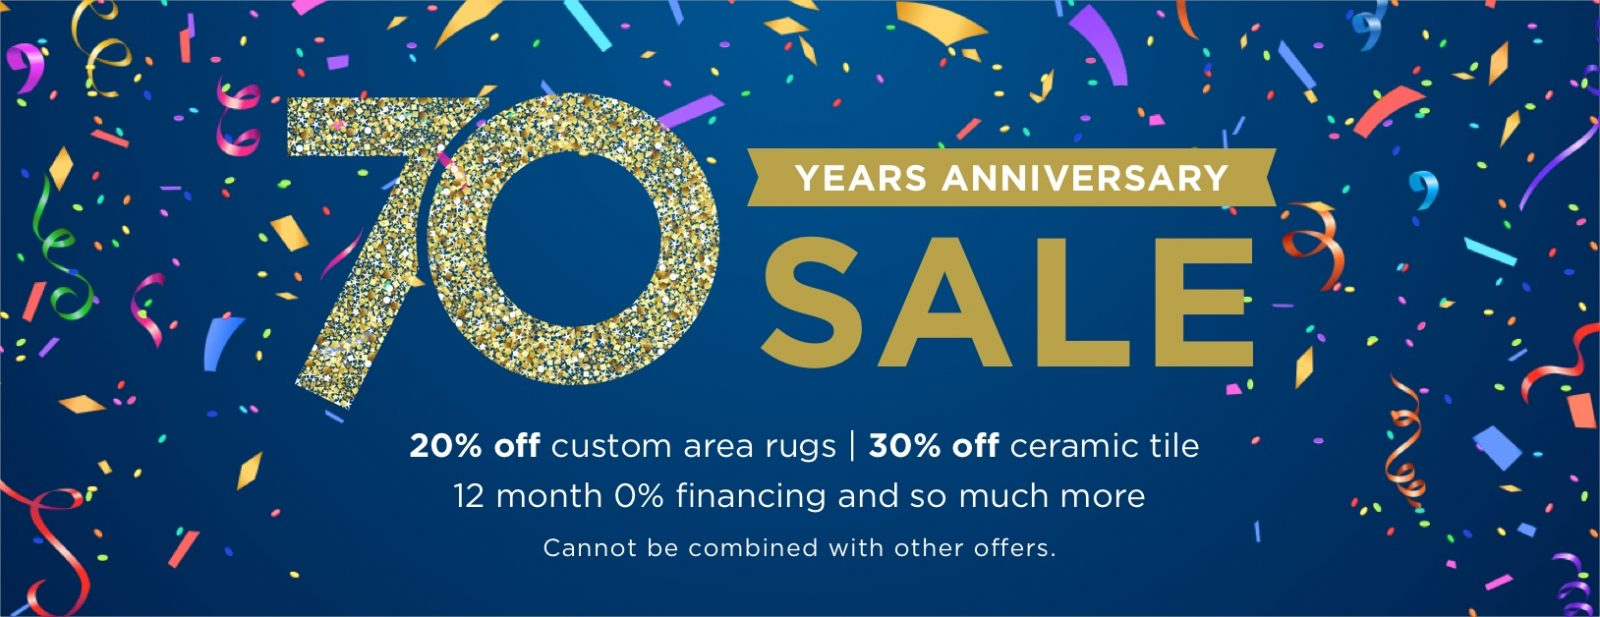 70th Anniversary Sale - 20% off custom area rugs   30% off ceramic tile 12 month 0% financing and so much more